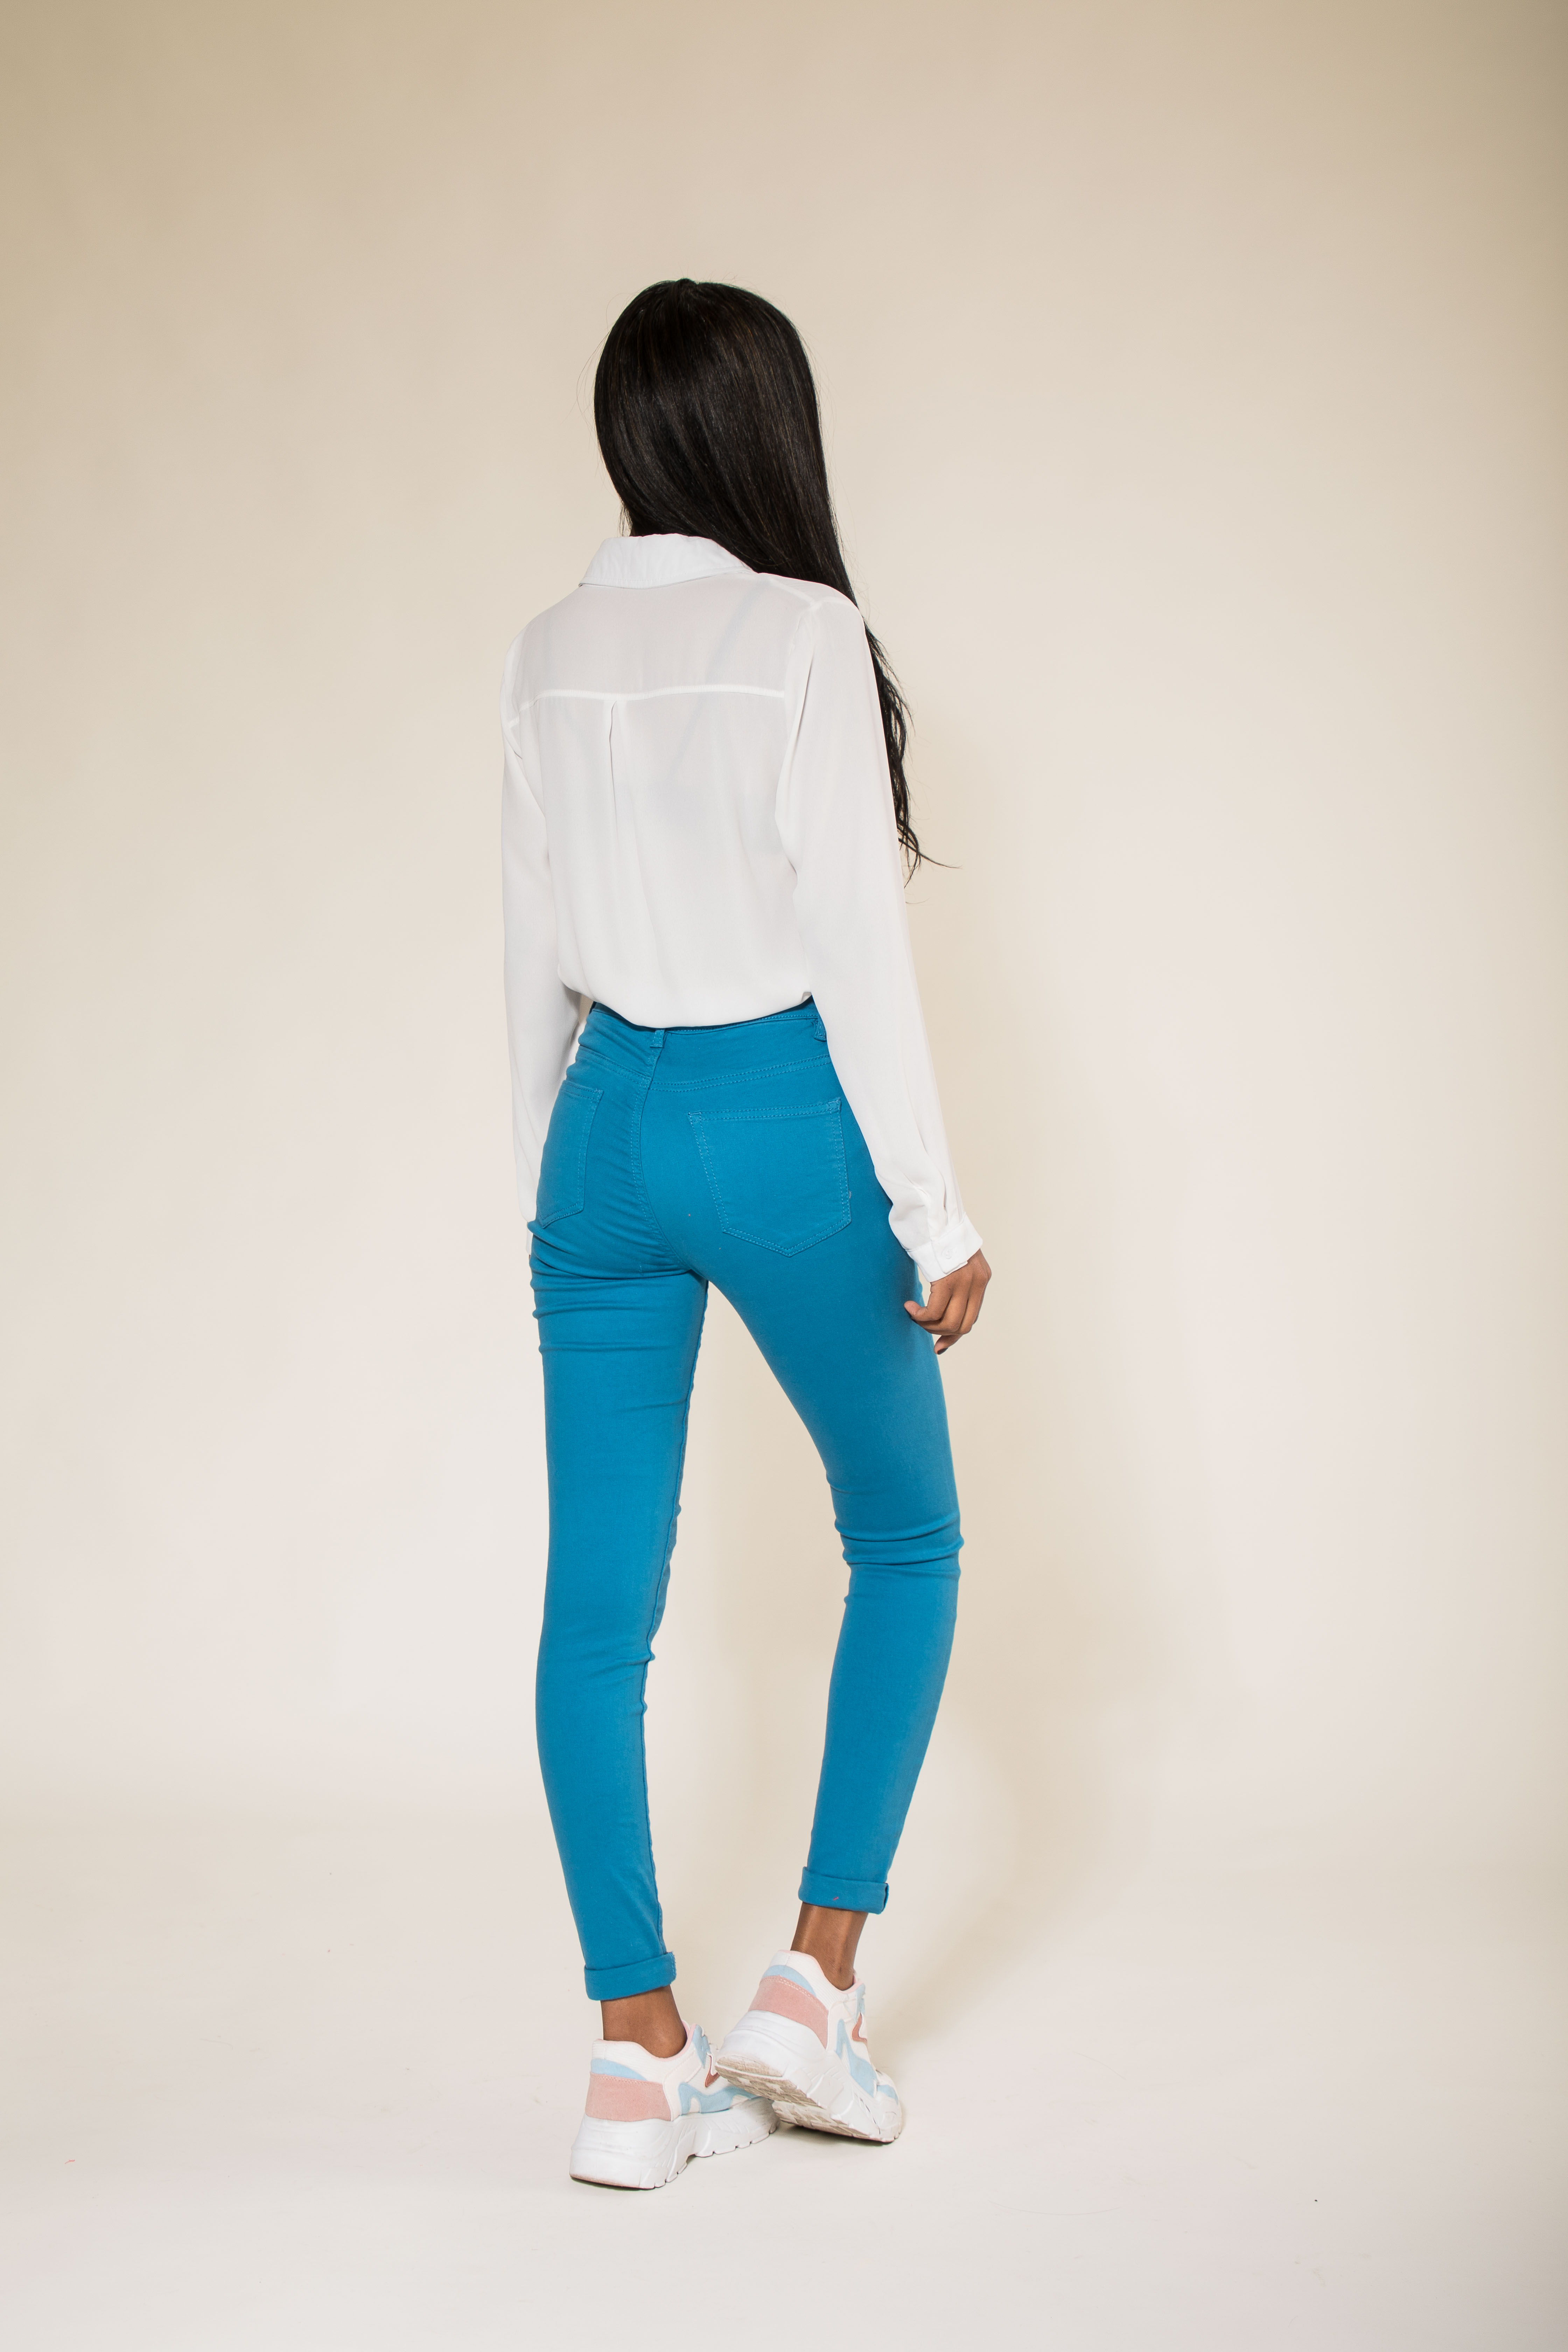 Women-High-Waisted-Jeans-Ladies-Coloured-Stretchy-jeggings-Pants-Size-6-14 thumbnail 15